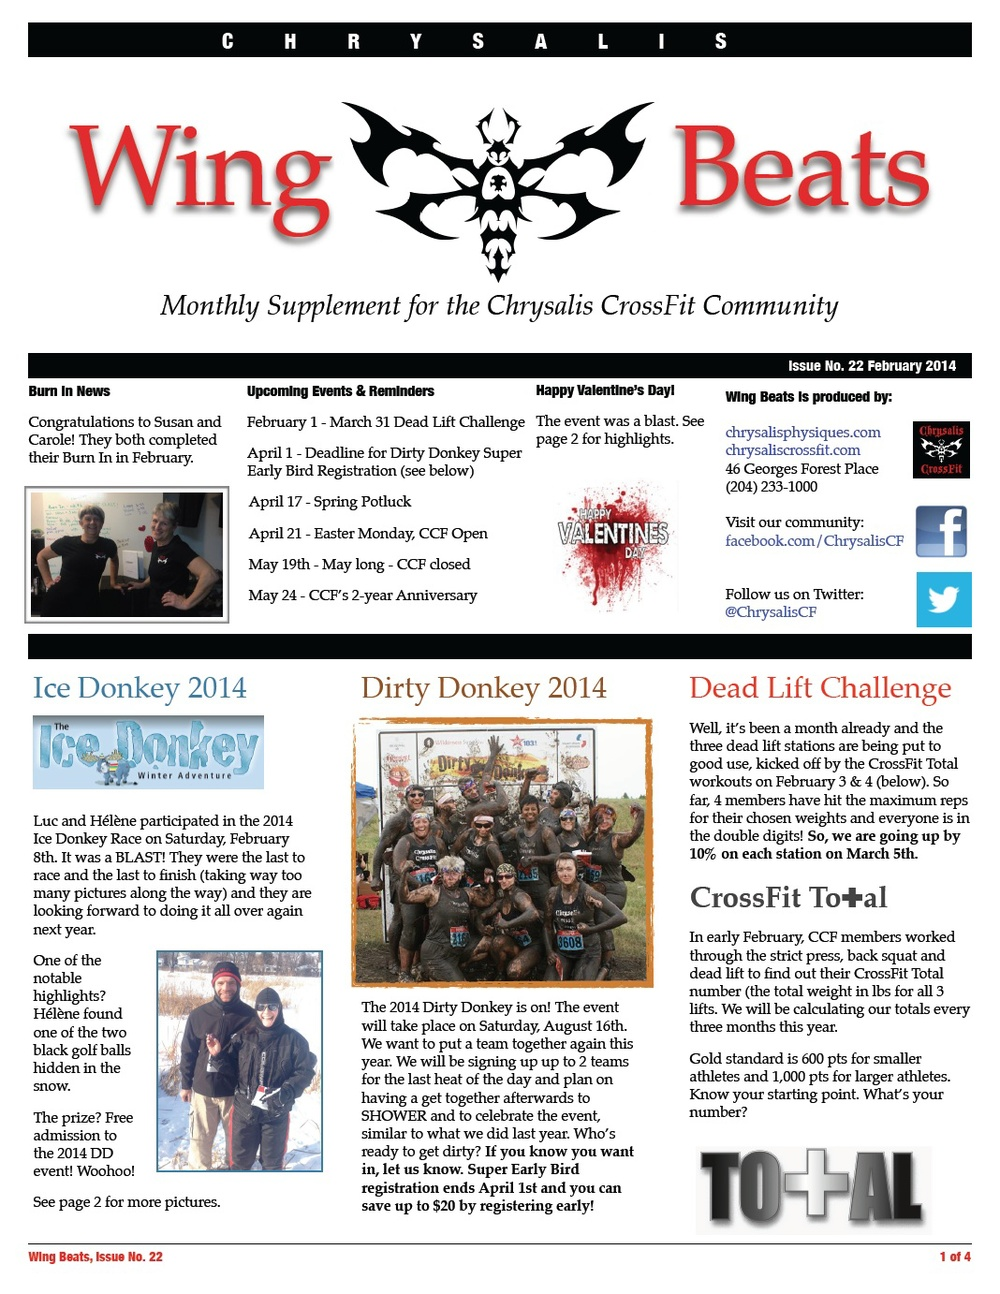 WingBeats Issue #22 - February 2014